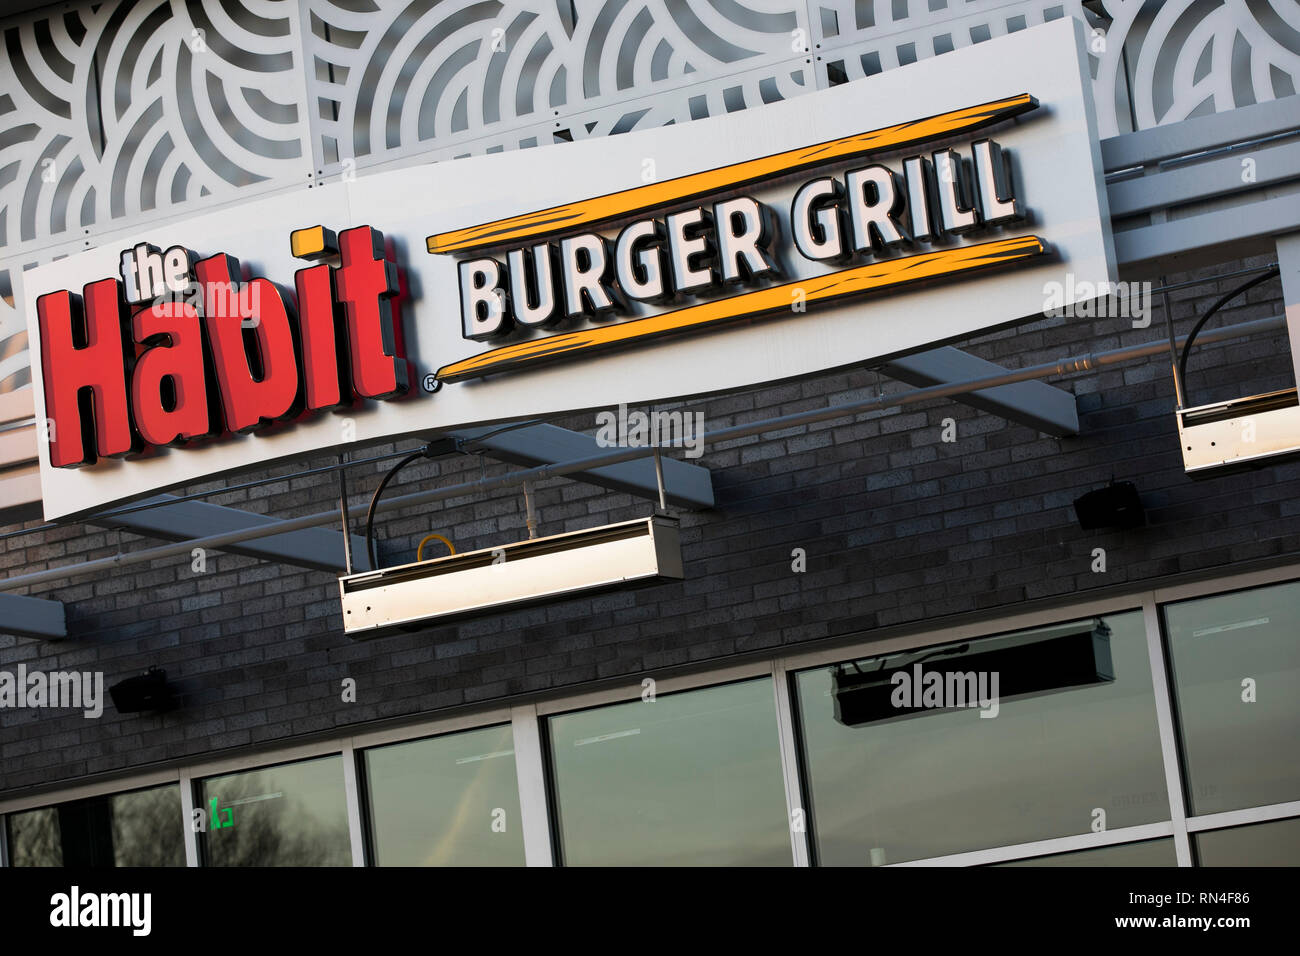 A logo sign outside of a The Habit Burger Grill restaurant location in Chantilly, Virginia on February 14, 2019 - Stock Image